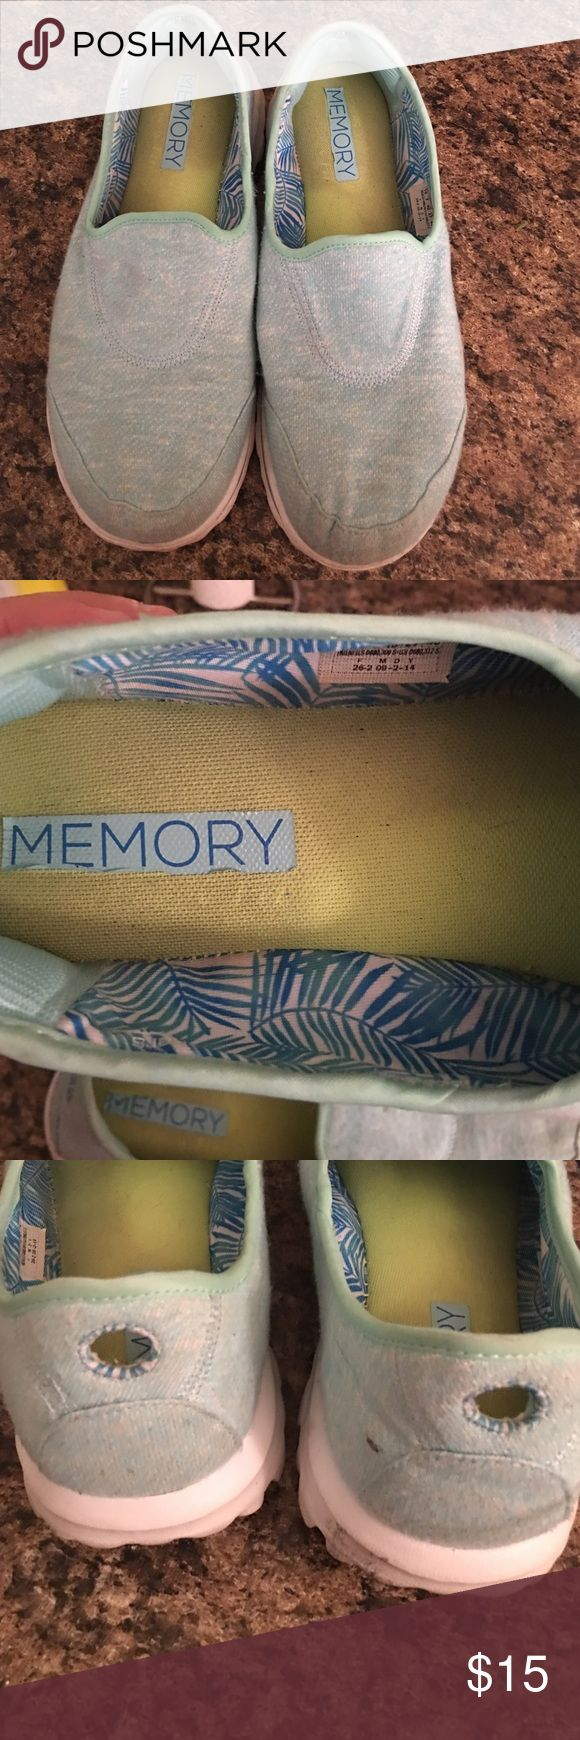 Skechers GoWalk Memory Foam Sneakers (Washable) Skechers GoWalk Memory Foam Sneakers. Light blue/Aqua. Size 10. Light signs of wear. Sneakers are washable and dryer-safe. Skechers Shoes Sneakers